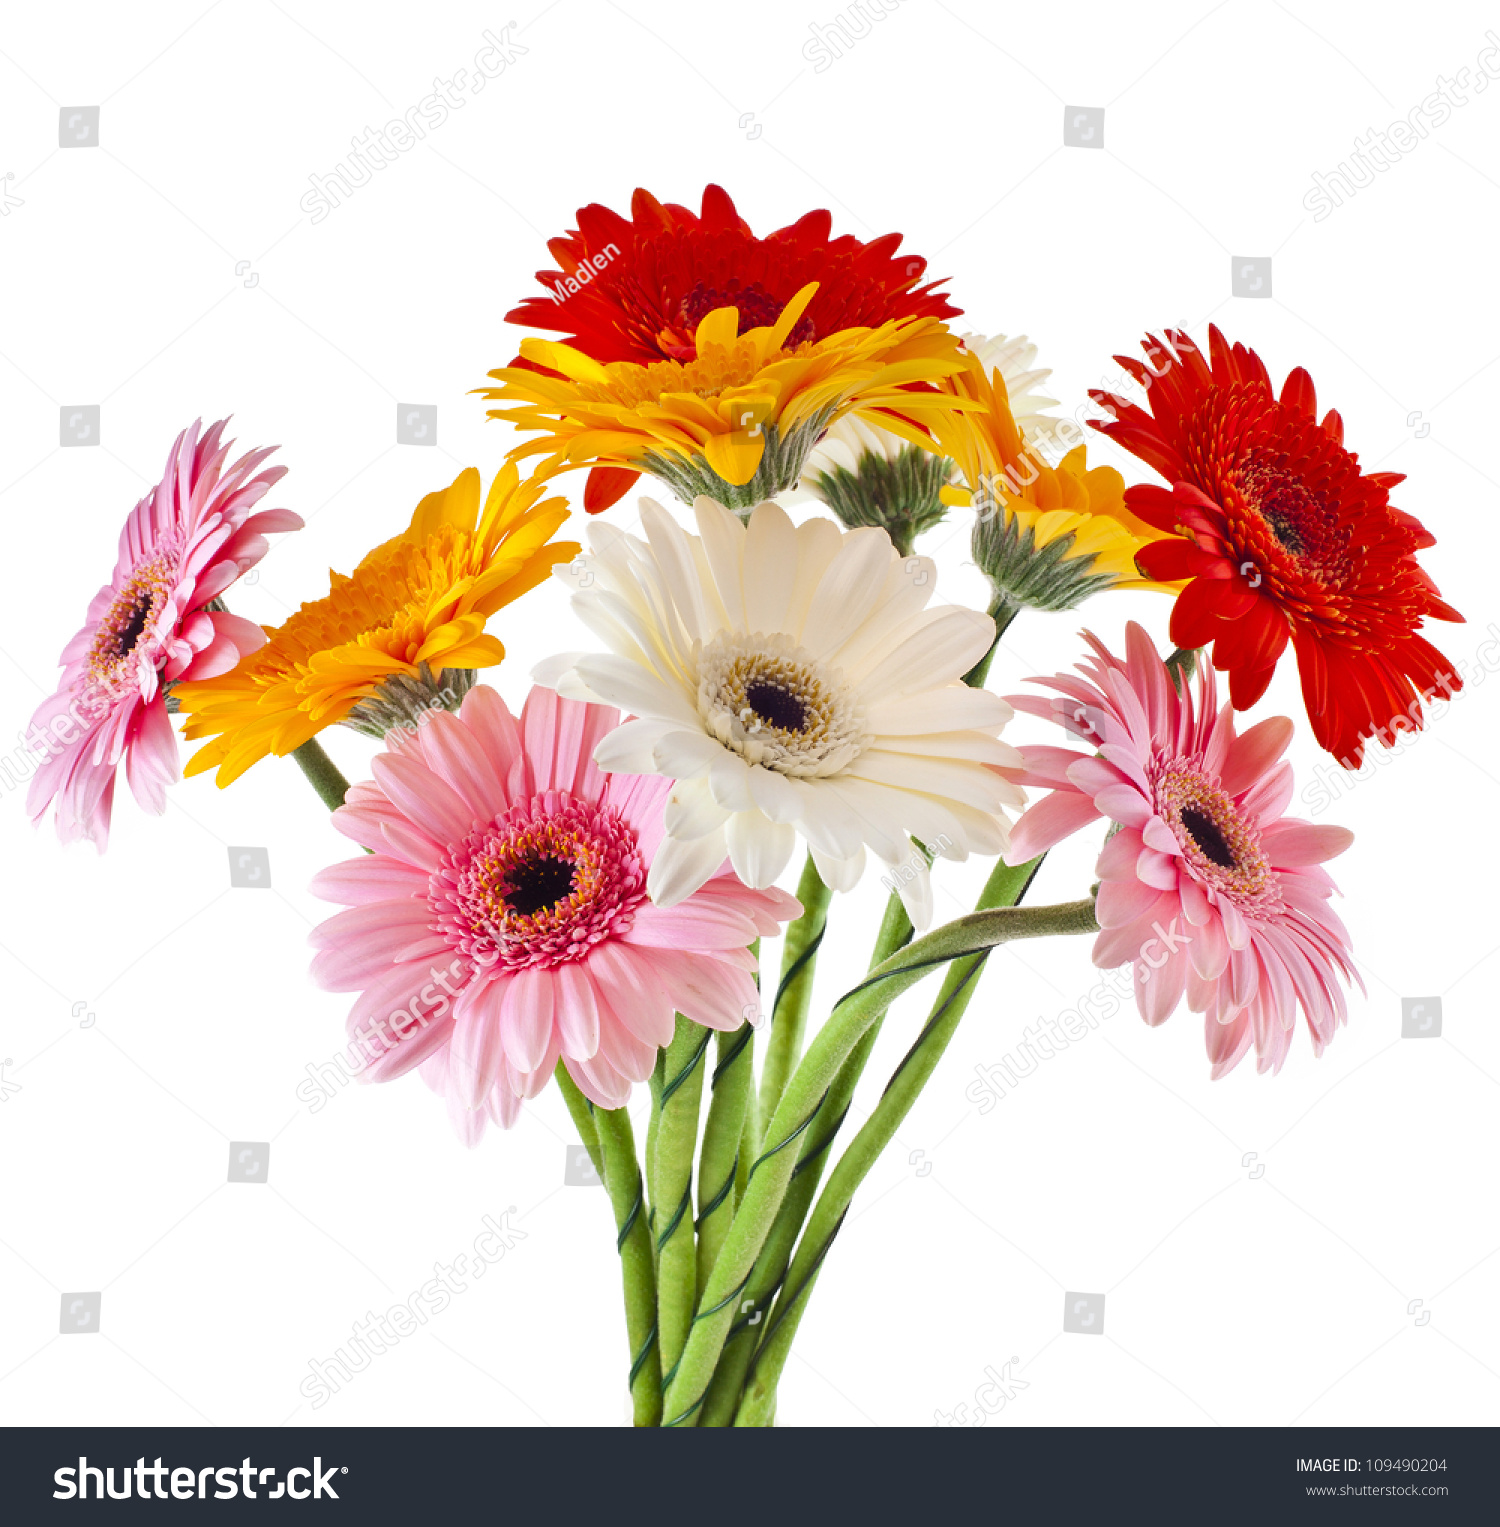 Green gerbera daisy bouquet 817842 sciencemadesimplefo sms tagsgerberas tips gardening pictures care meaninggreen gerbera daisy daisy flower deliveryhistory and meaning of gerbera daisies proflowers blog izmirmasajfo